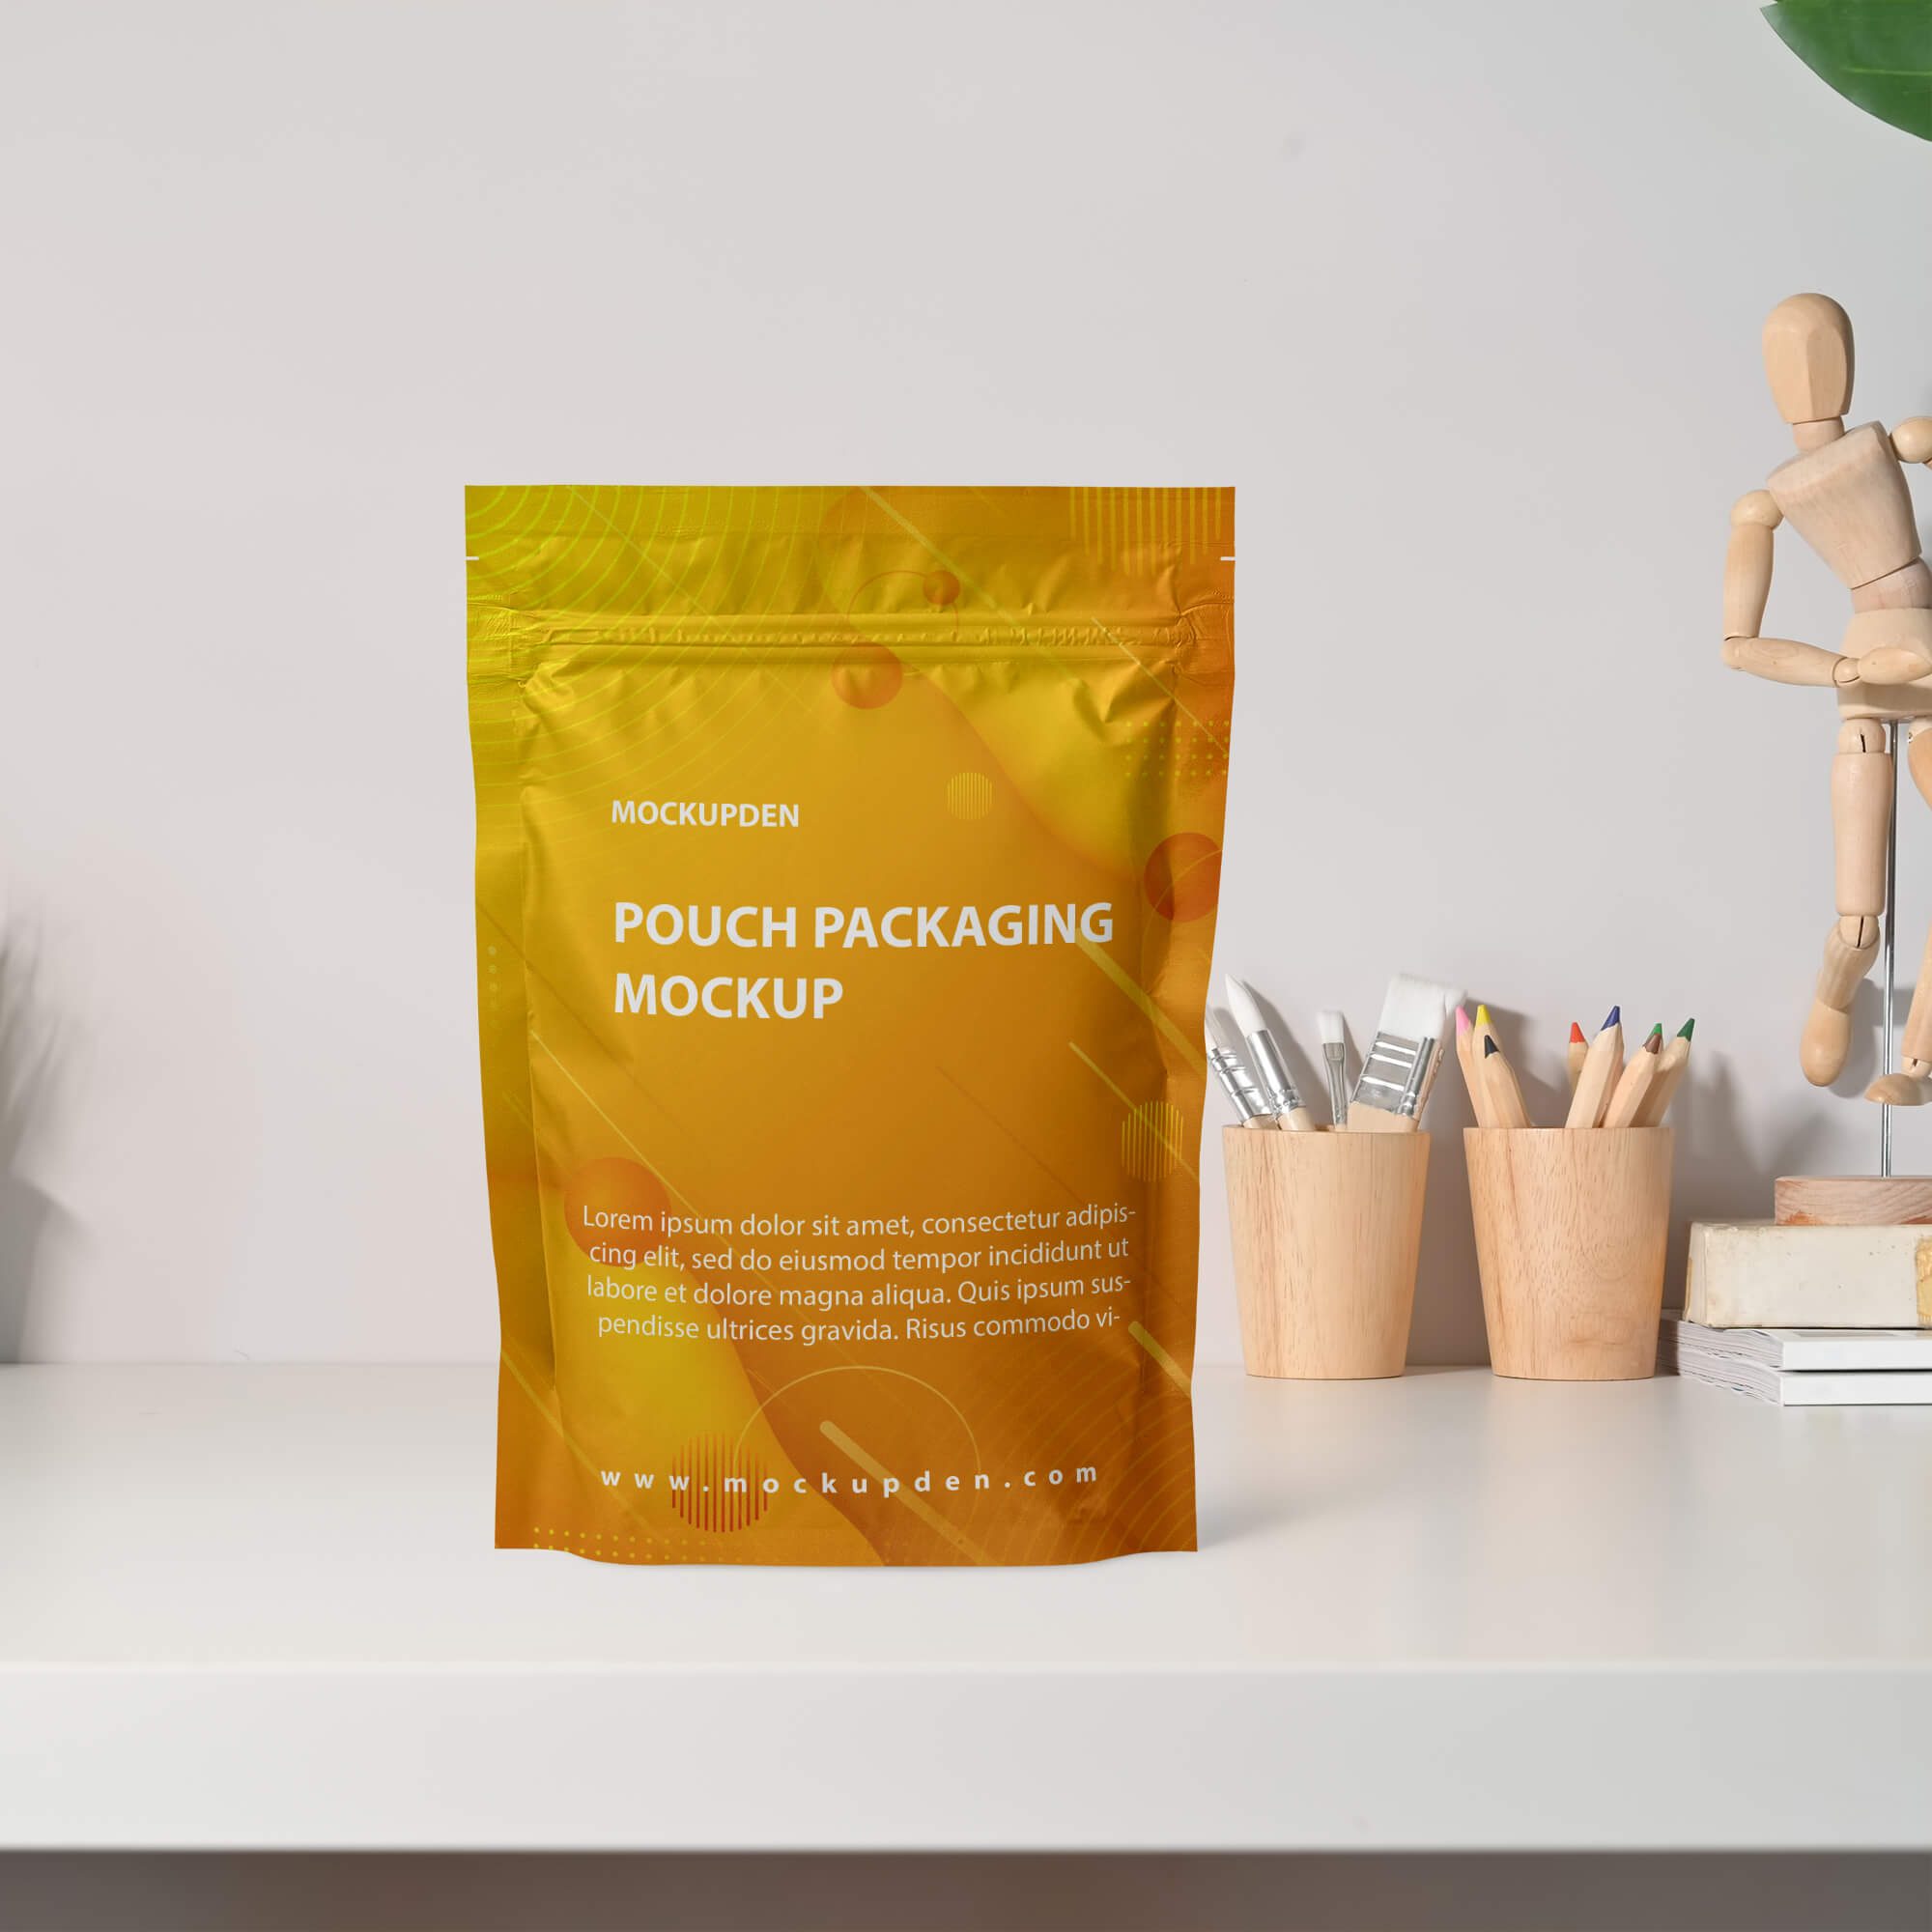 Free Pouch Packaging Mockup PSD Template